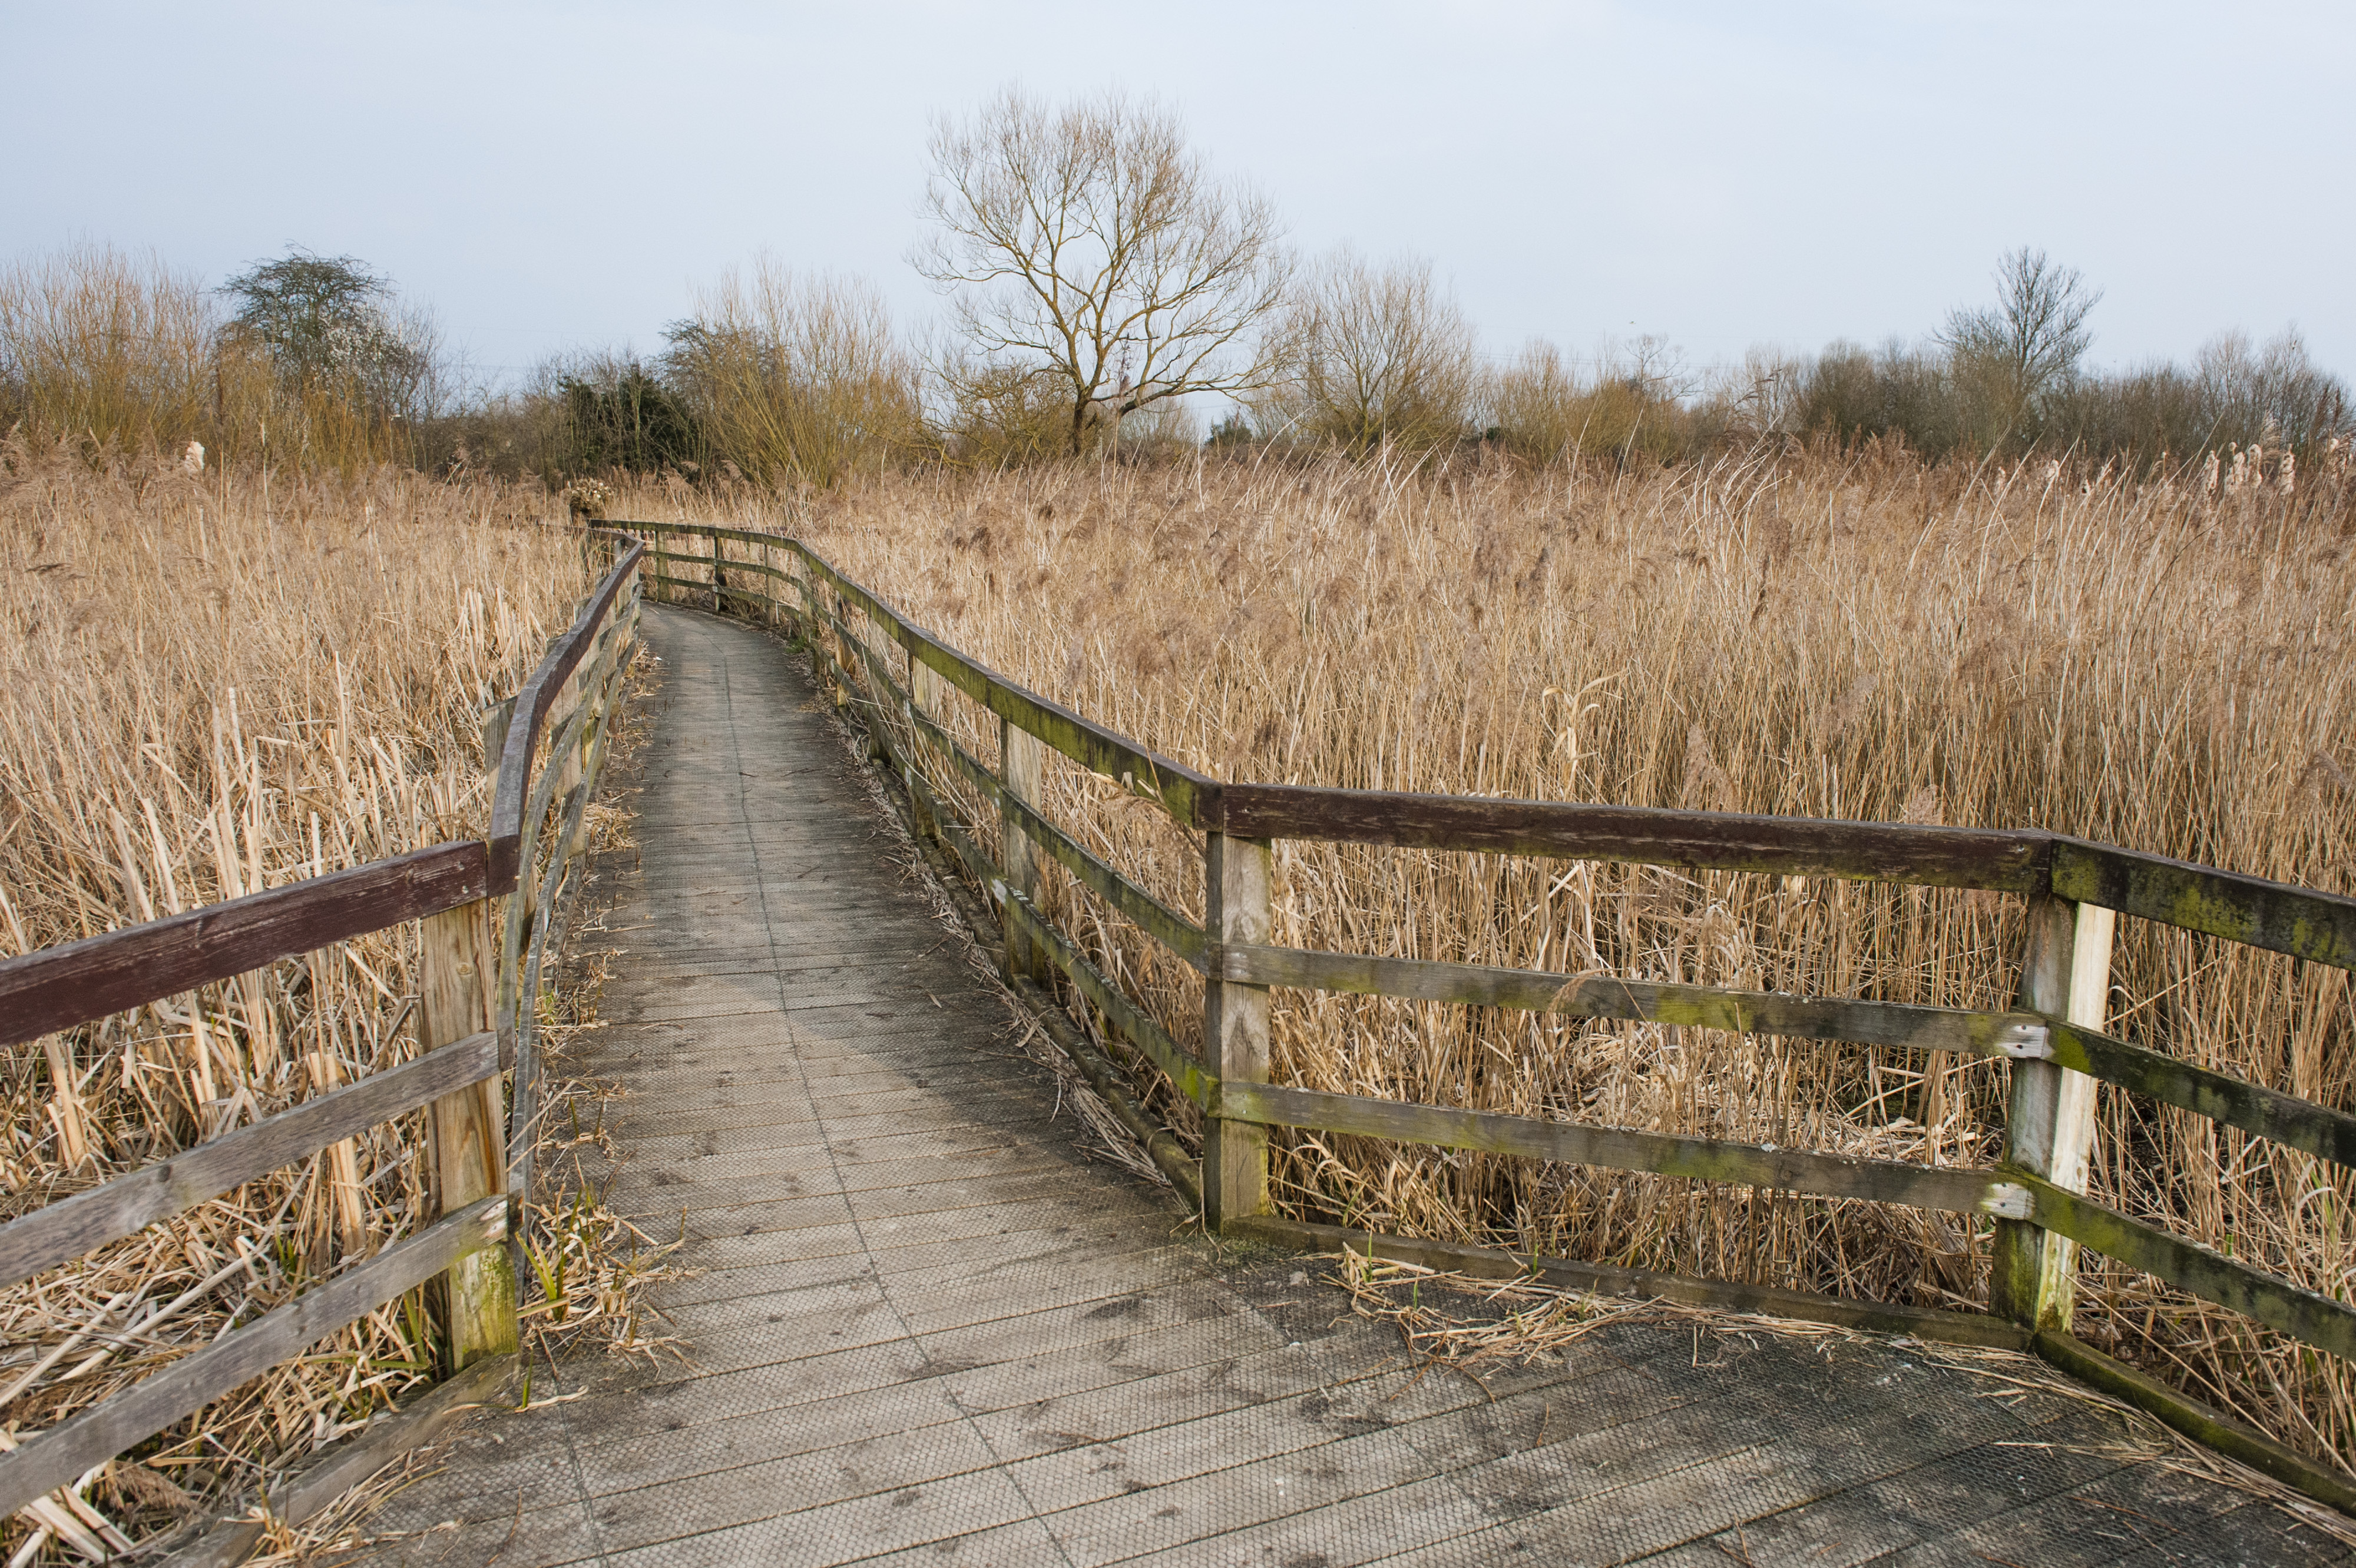 Wooden walkway through reeds in a nature reserve